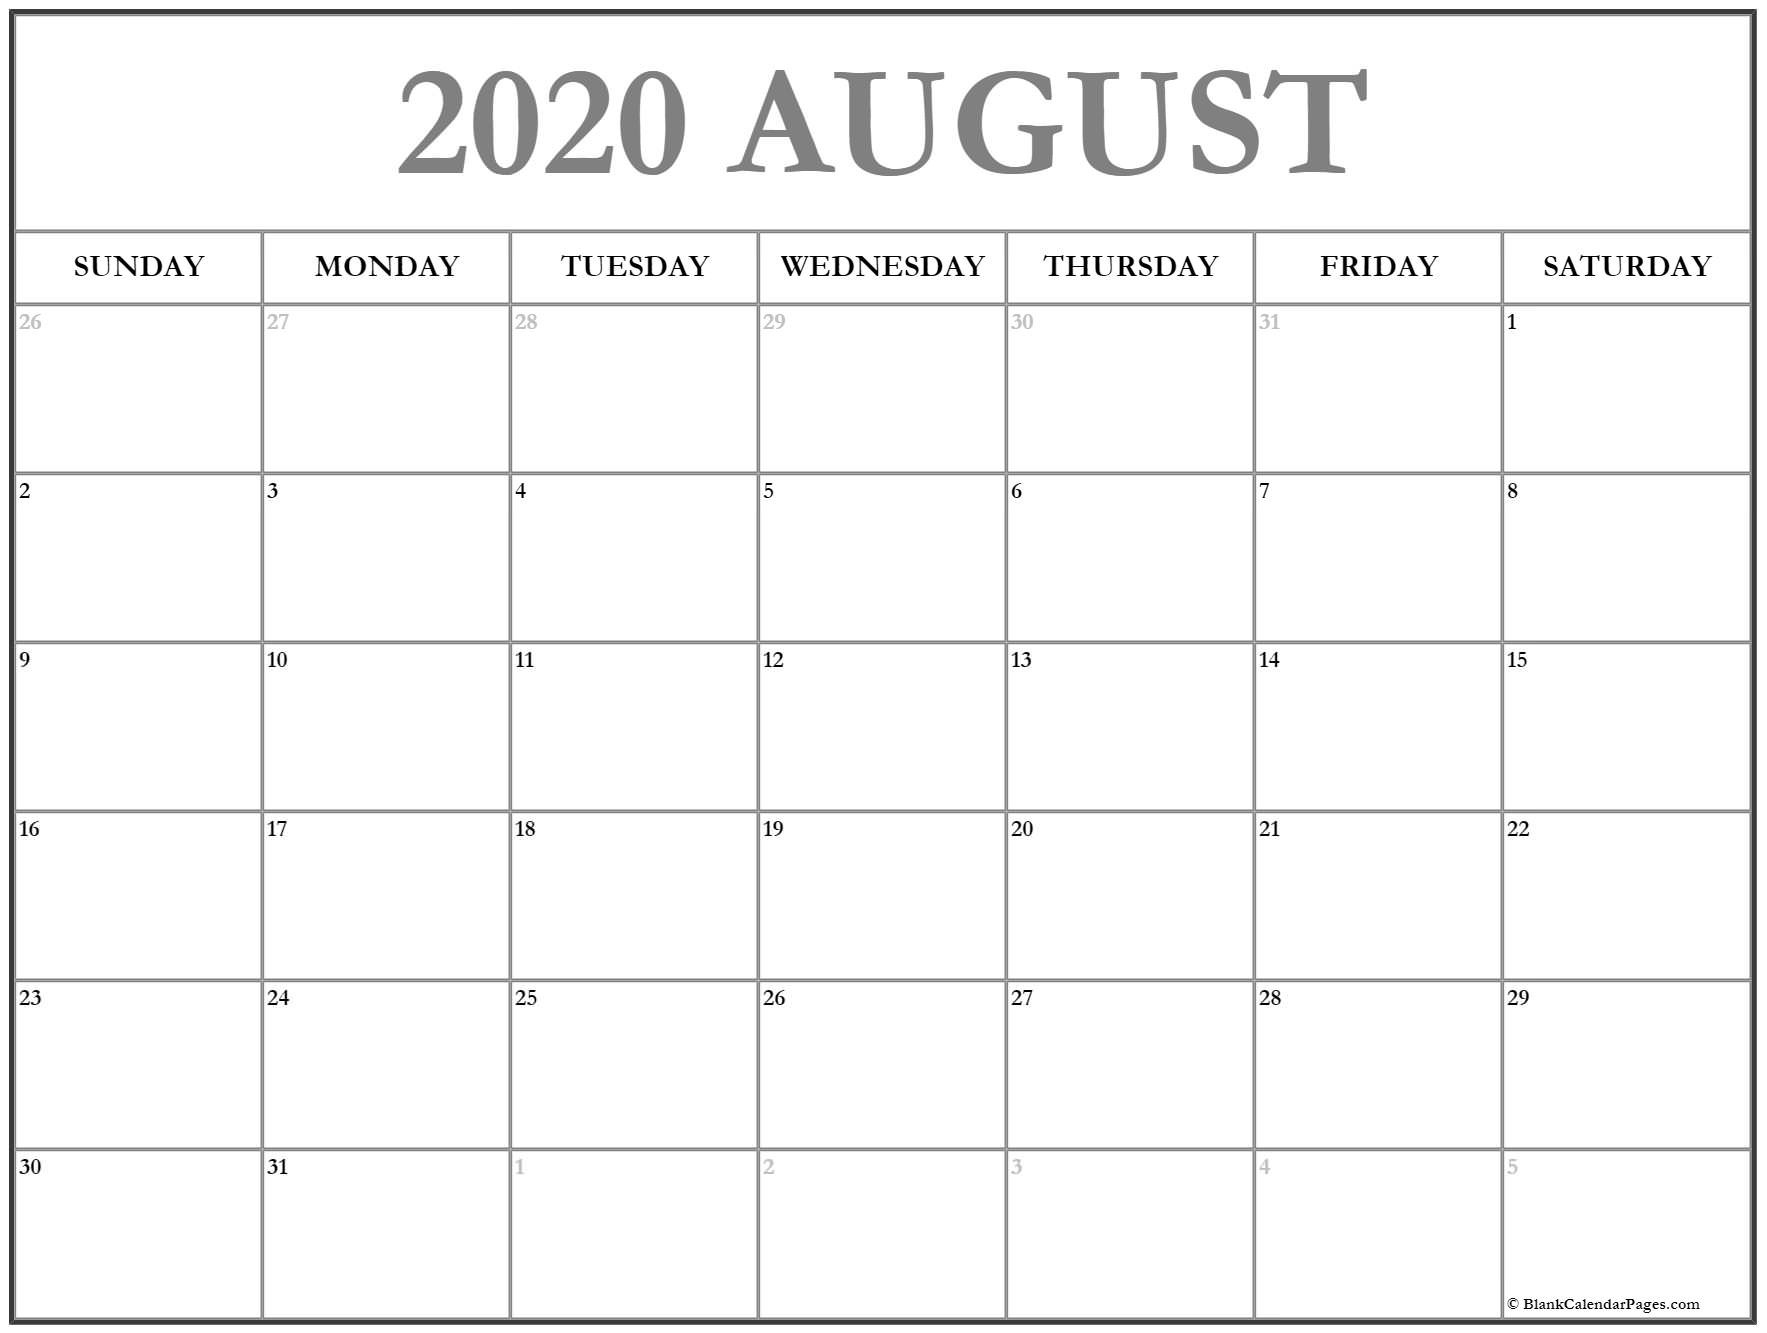 August 2020 Calendar | Free Printable Monthly Calendars-Printable Monthly Bill Pay Calendar 2020